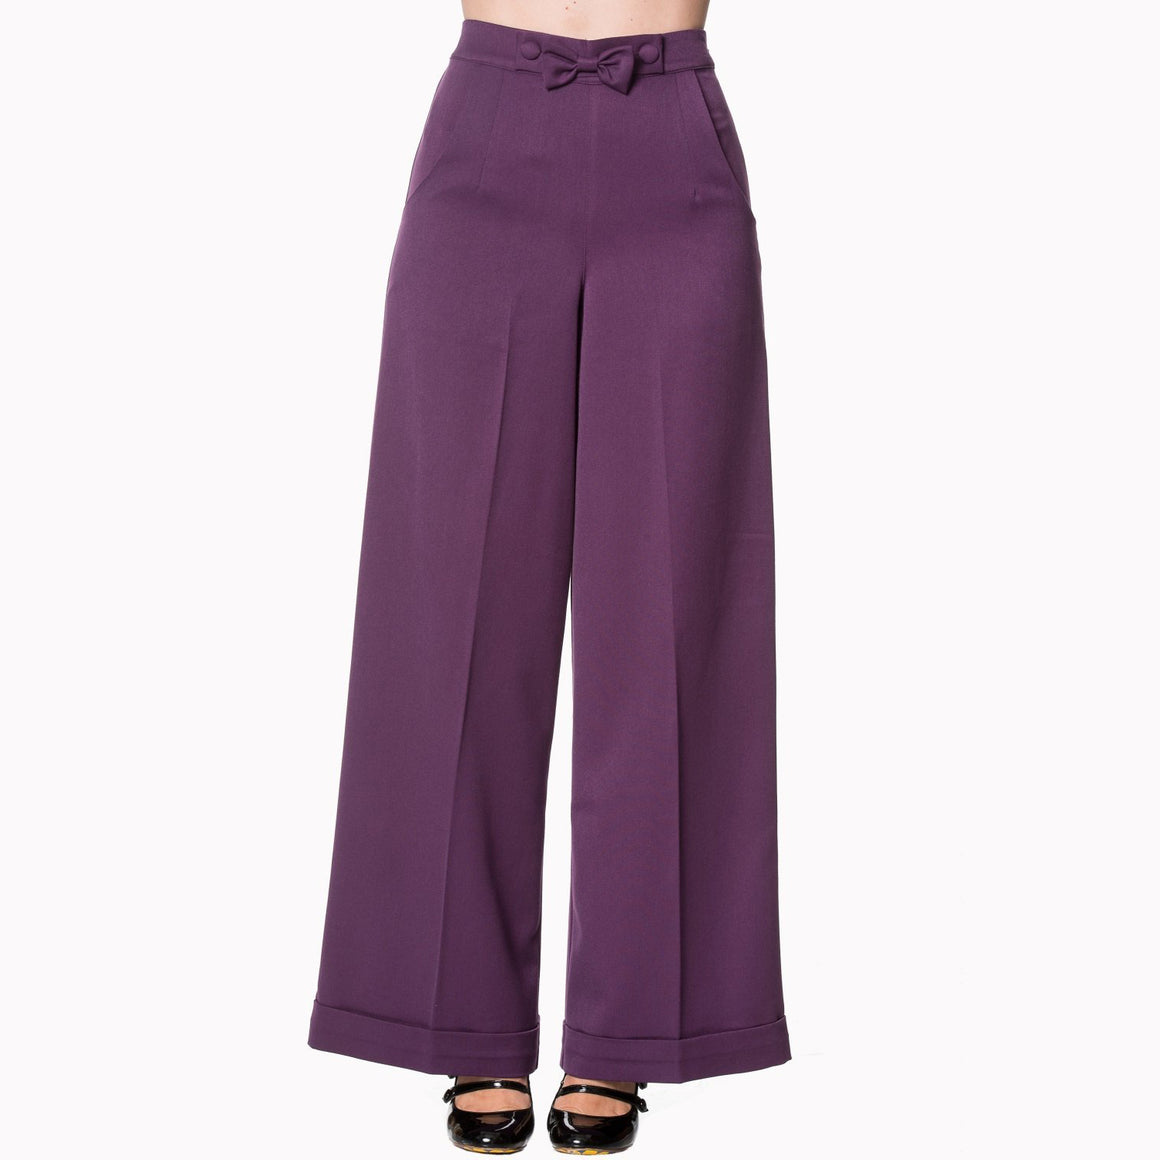 High Waistband Aubergine Flare Trousers - Pretty Kitty Fashion